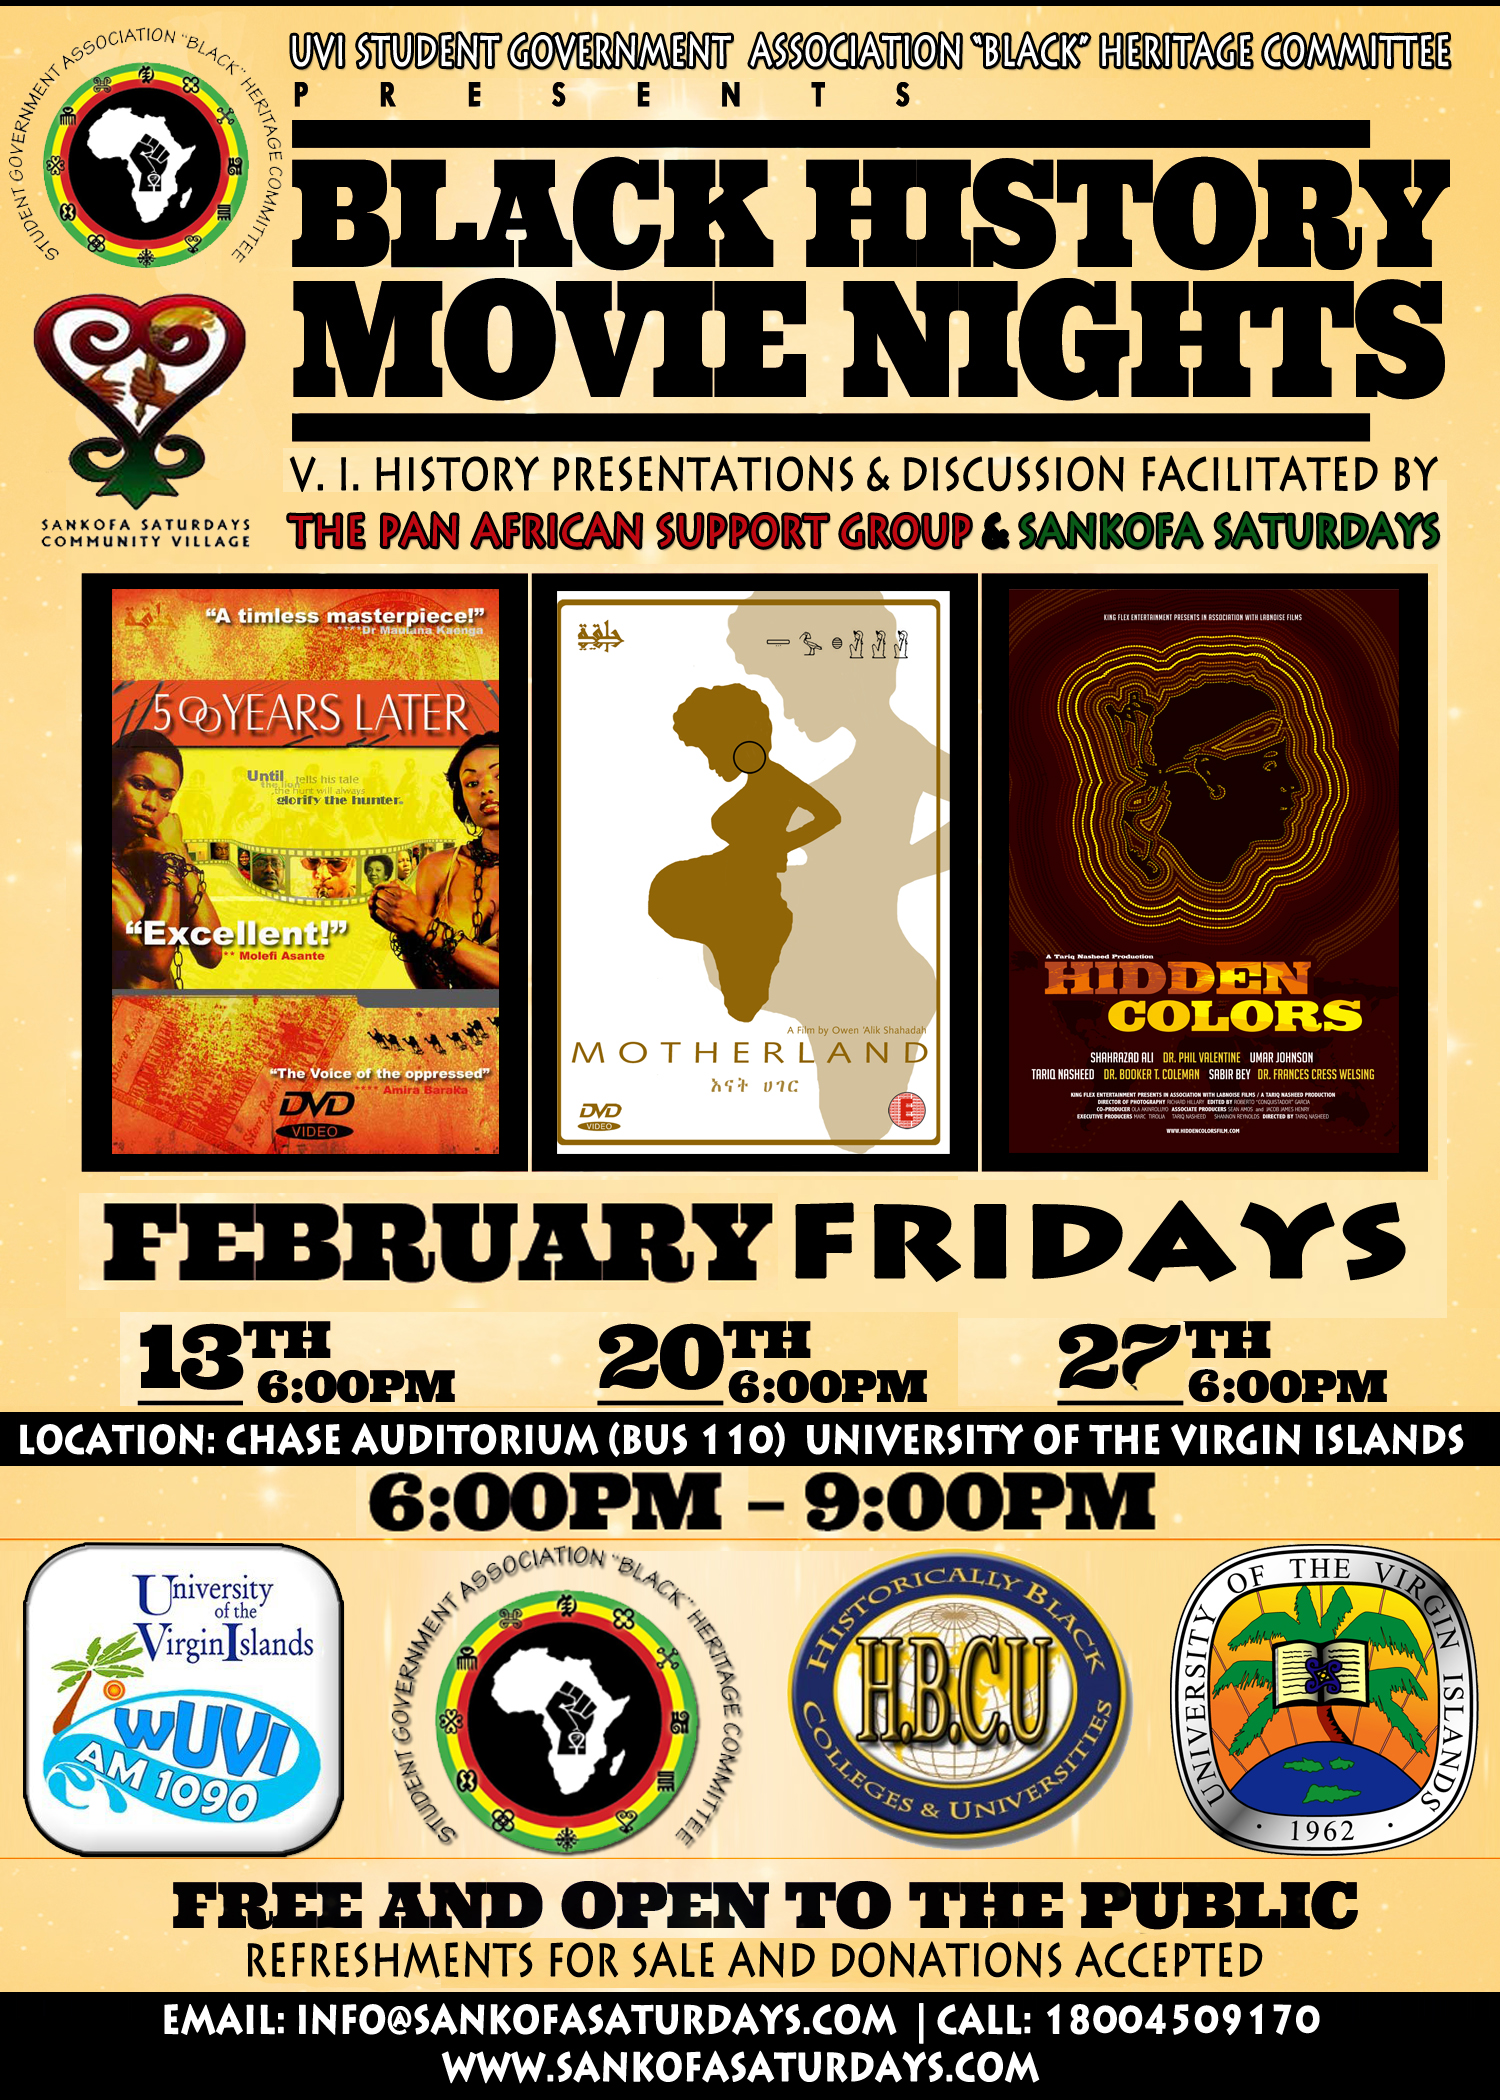 "The UVI SGA ""Black"" Heritage Committee, Sankofa Saturdays & the Pan African Support Group presents #Blackhistory #MOVIEnights 6-9pm #FRIDAYS at the University of the Virgin Islands #CHASEauditorium"